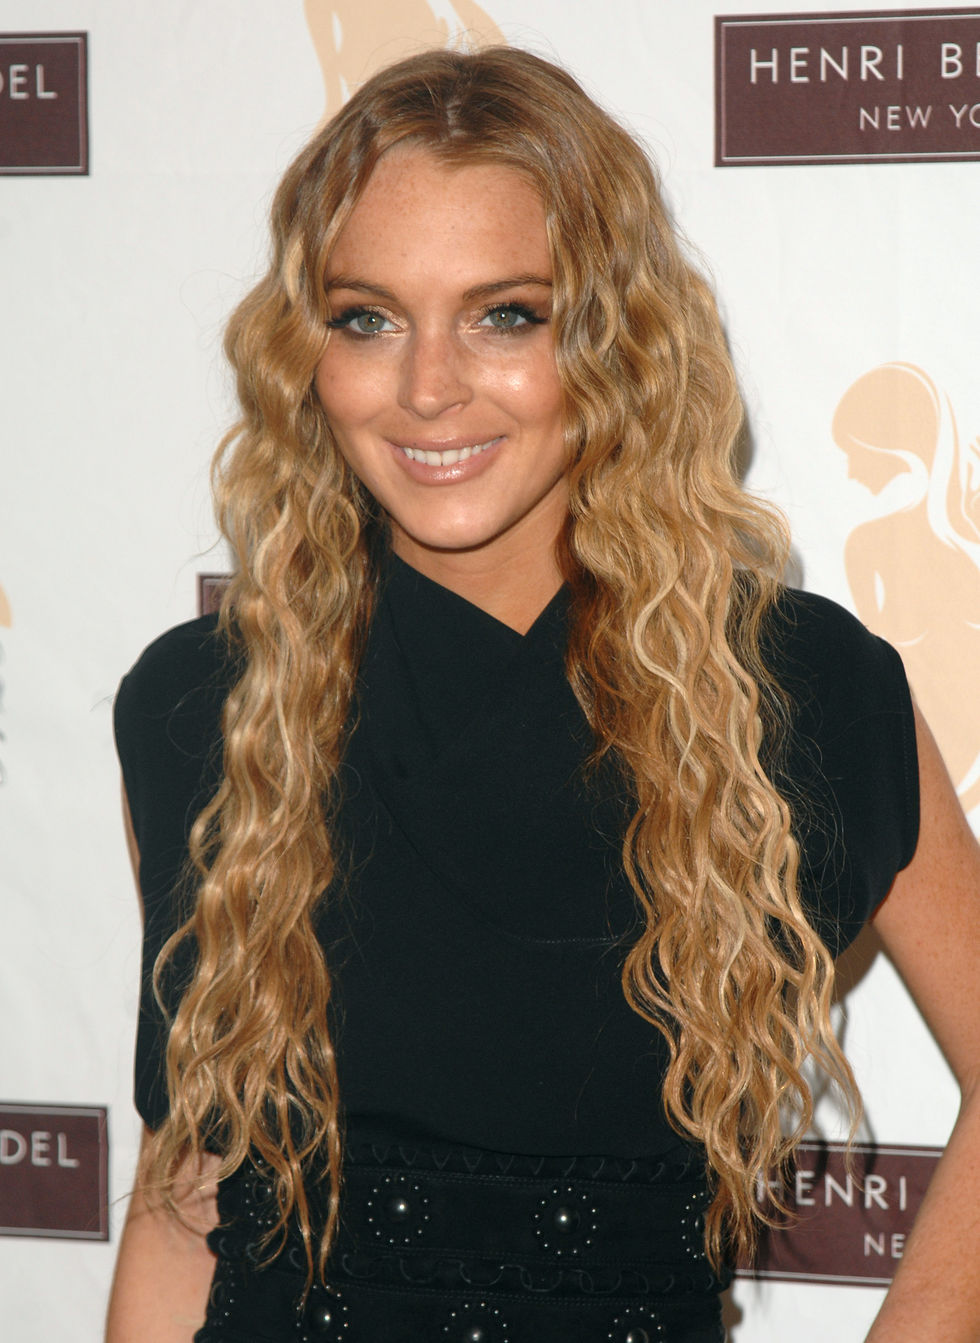 lindsay-lohan-6126-collection-promotion-at-henri-bendels-in-new-york-01